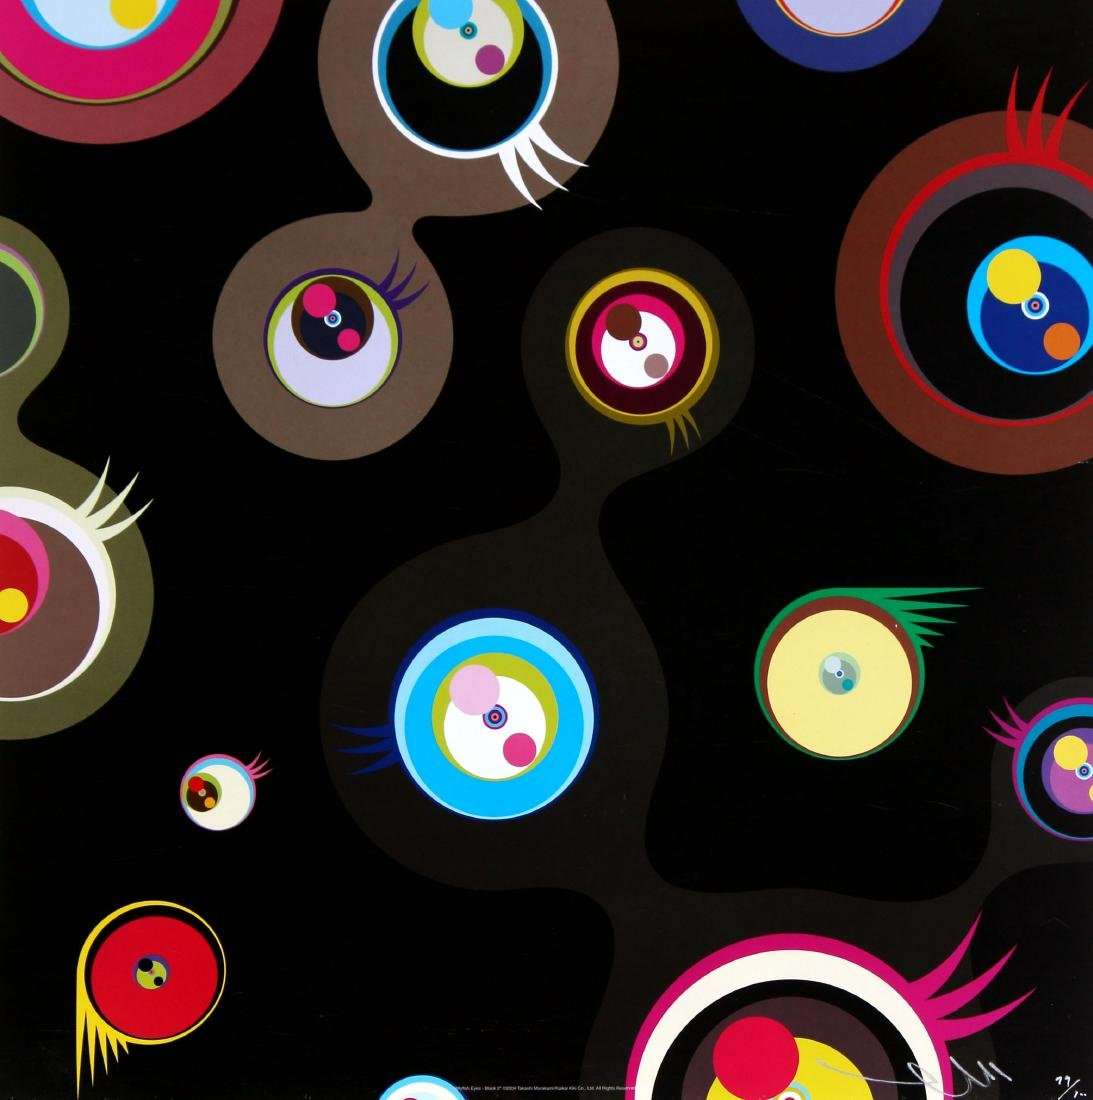 Takashi Murakami - Jellyfish Eyes Black